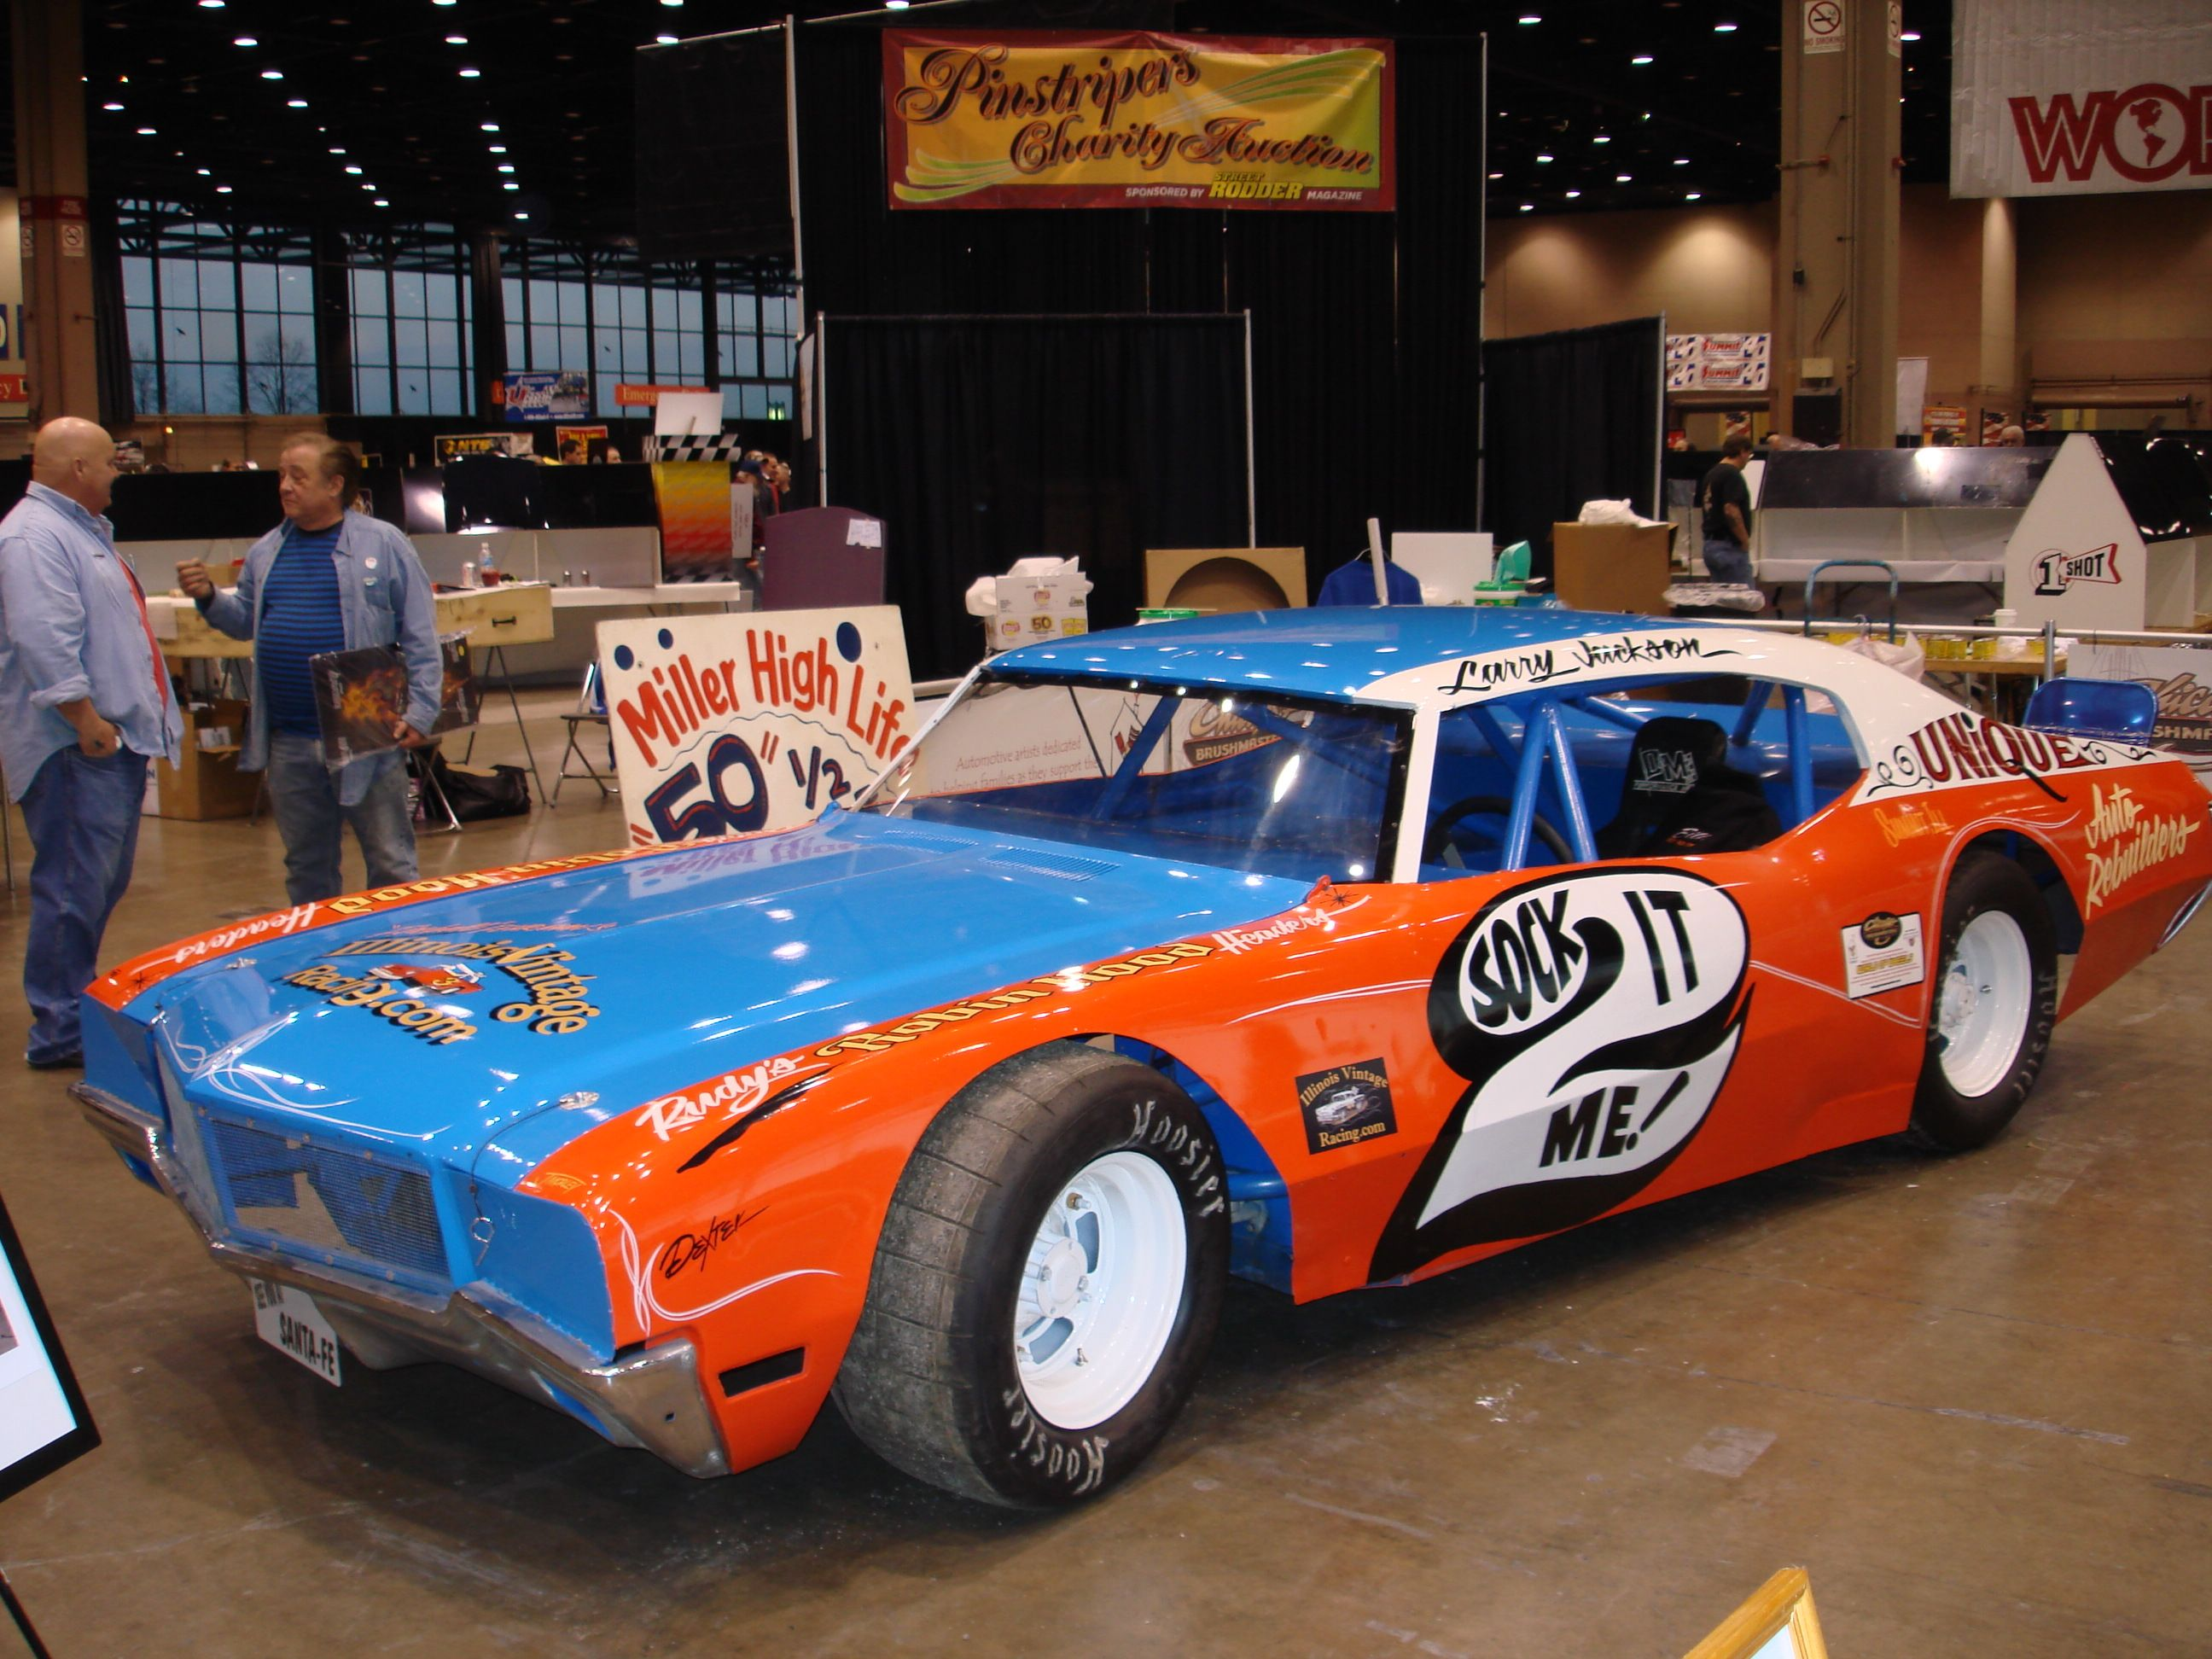 Buick Asphalt Race Car Racing Pinterest Buick Cars And